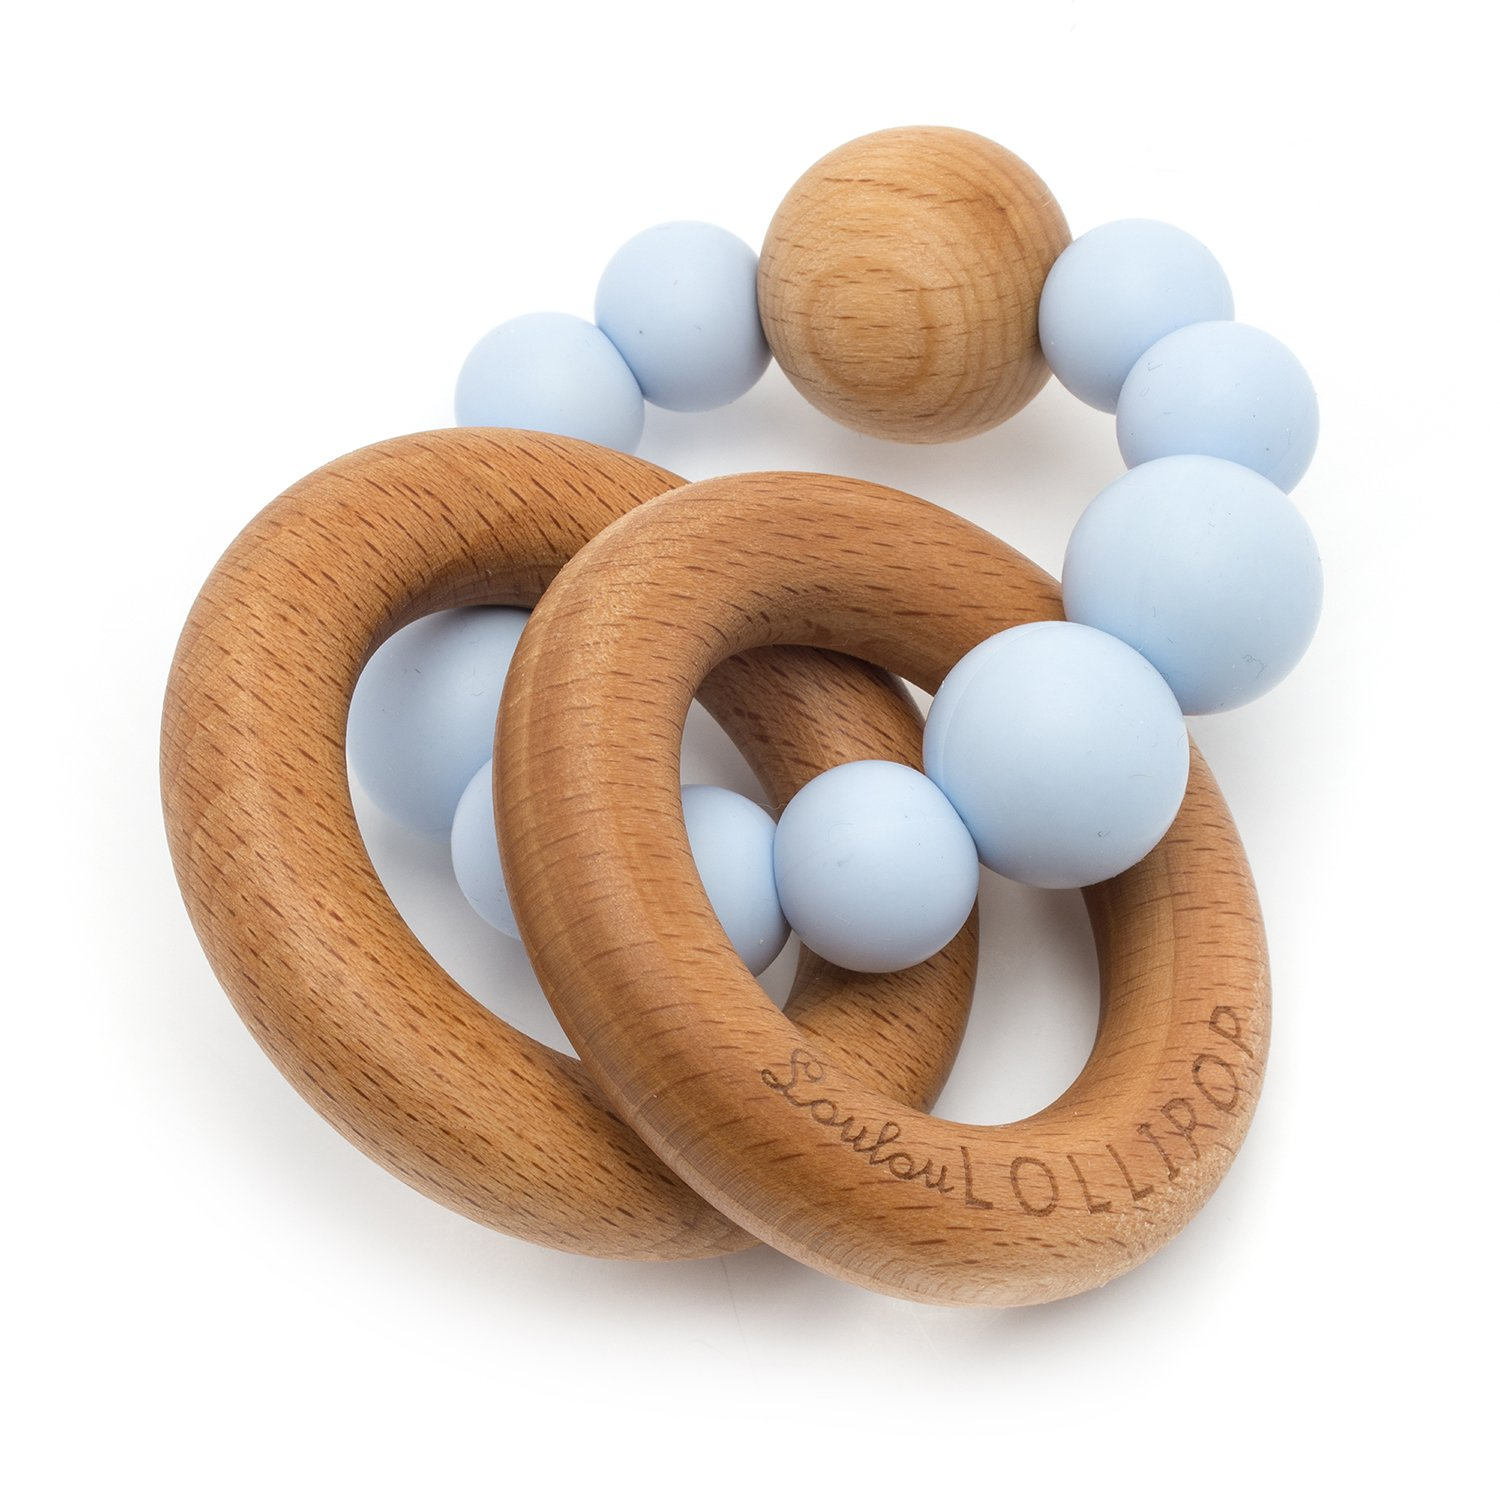 Educational Baby Toys Which Are Safe And Fun To Play With